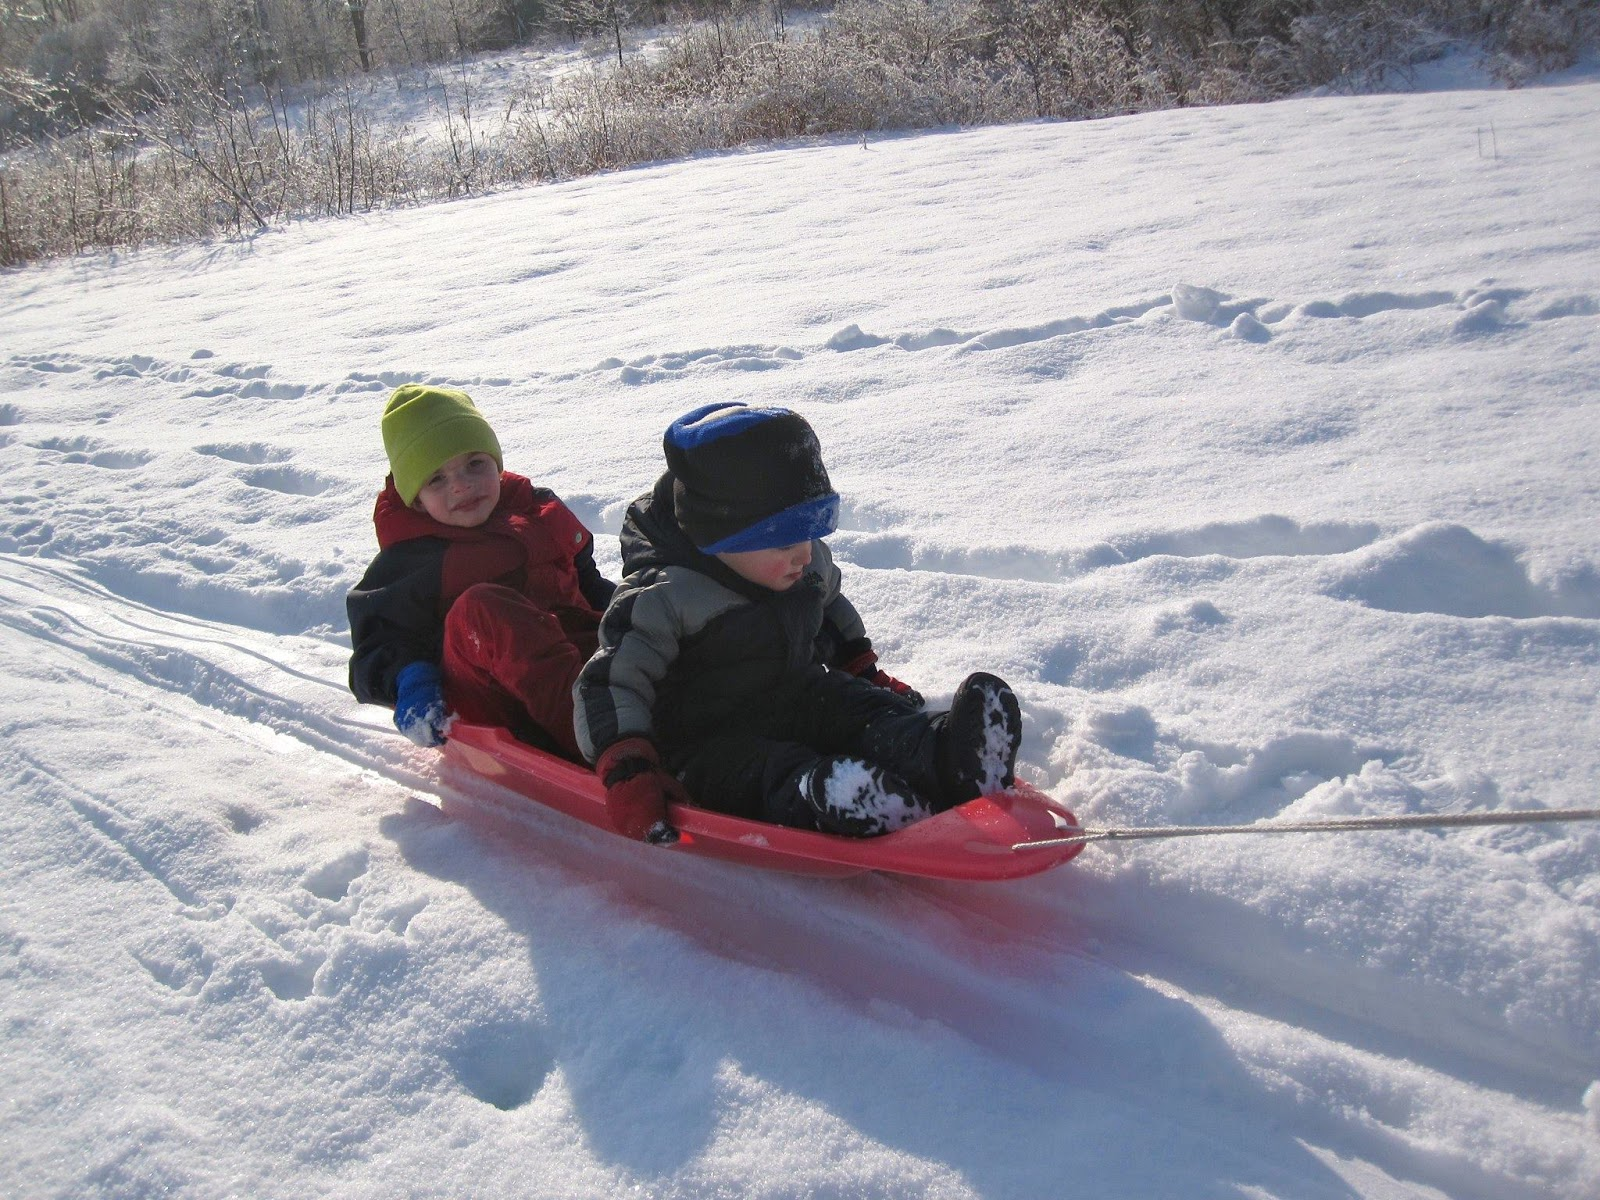 grandsons sledding in the snow